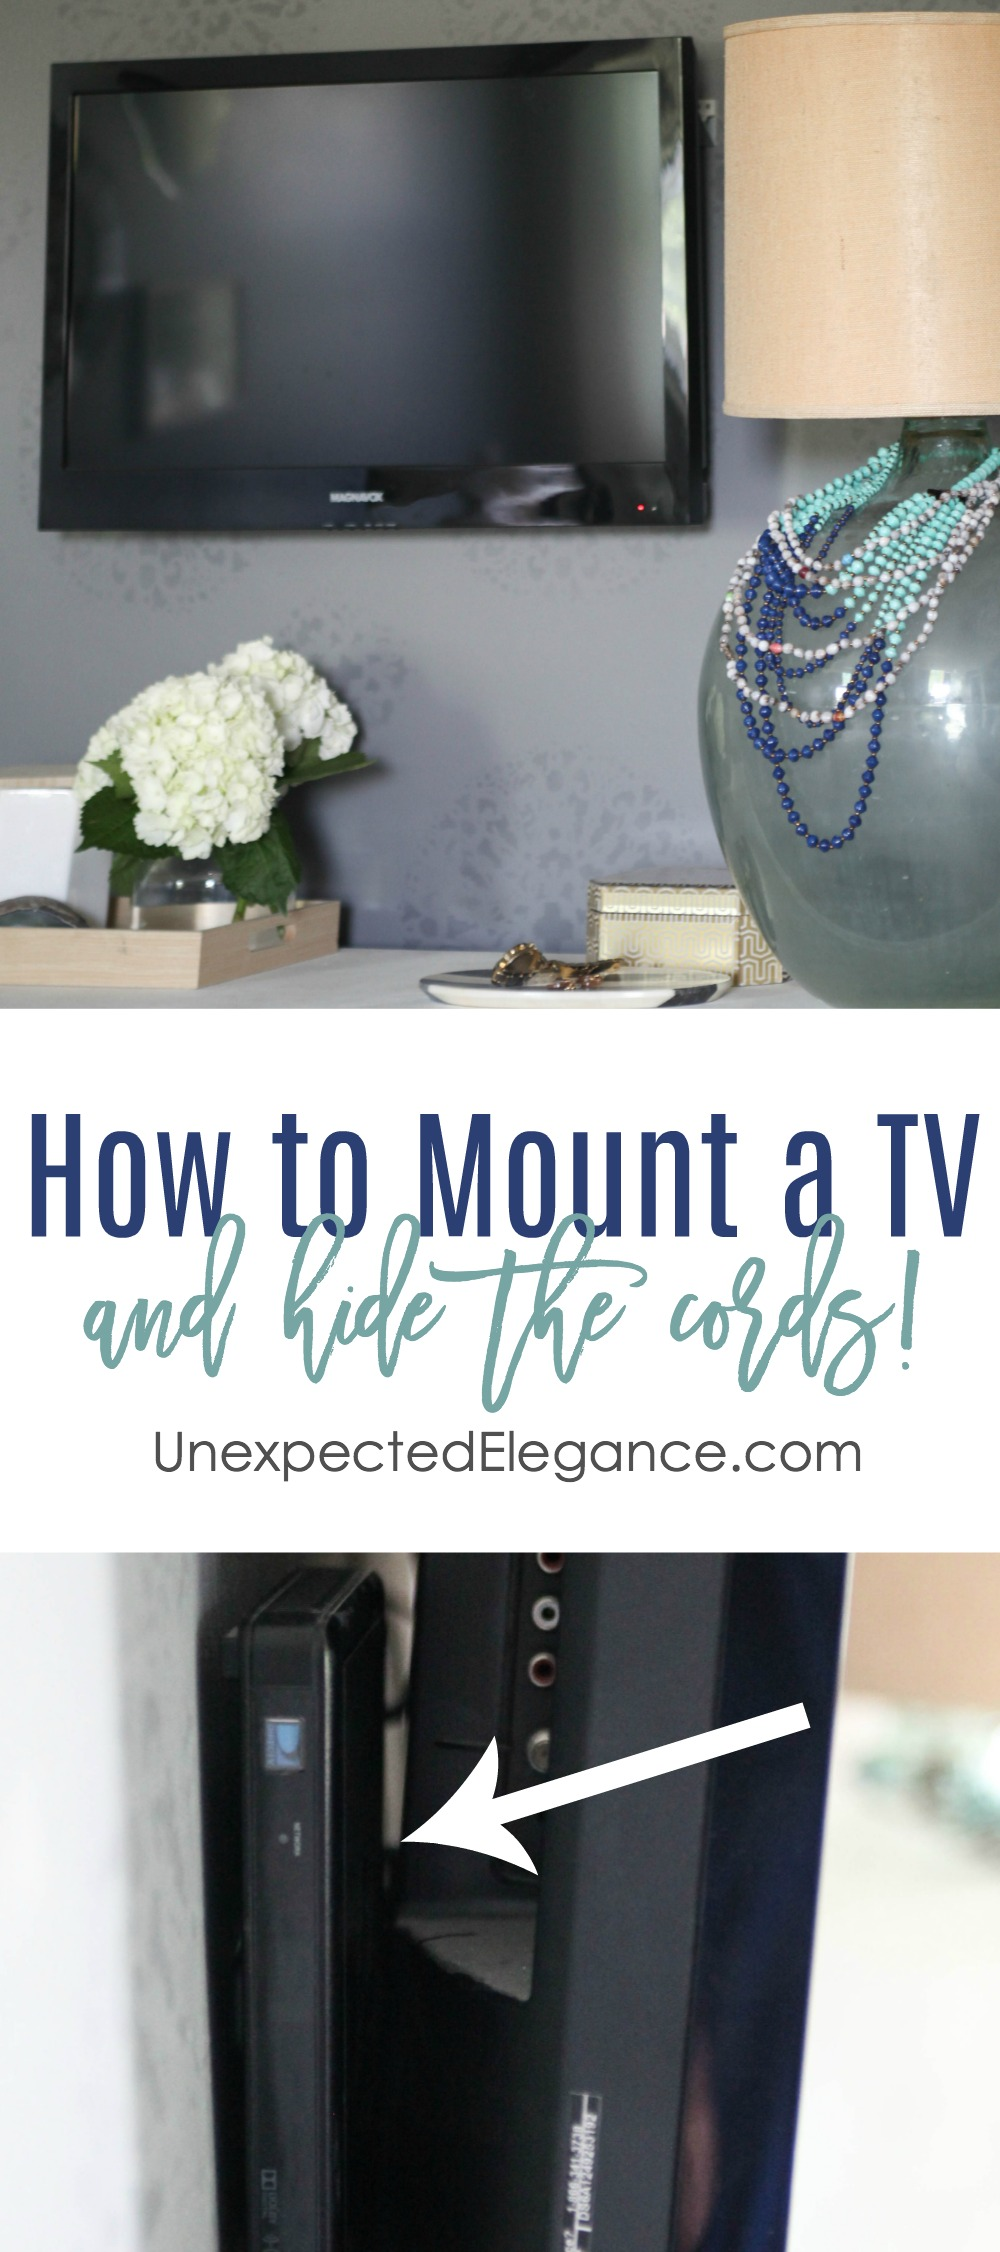 How To Mount A Tv And Hide The Cords